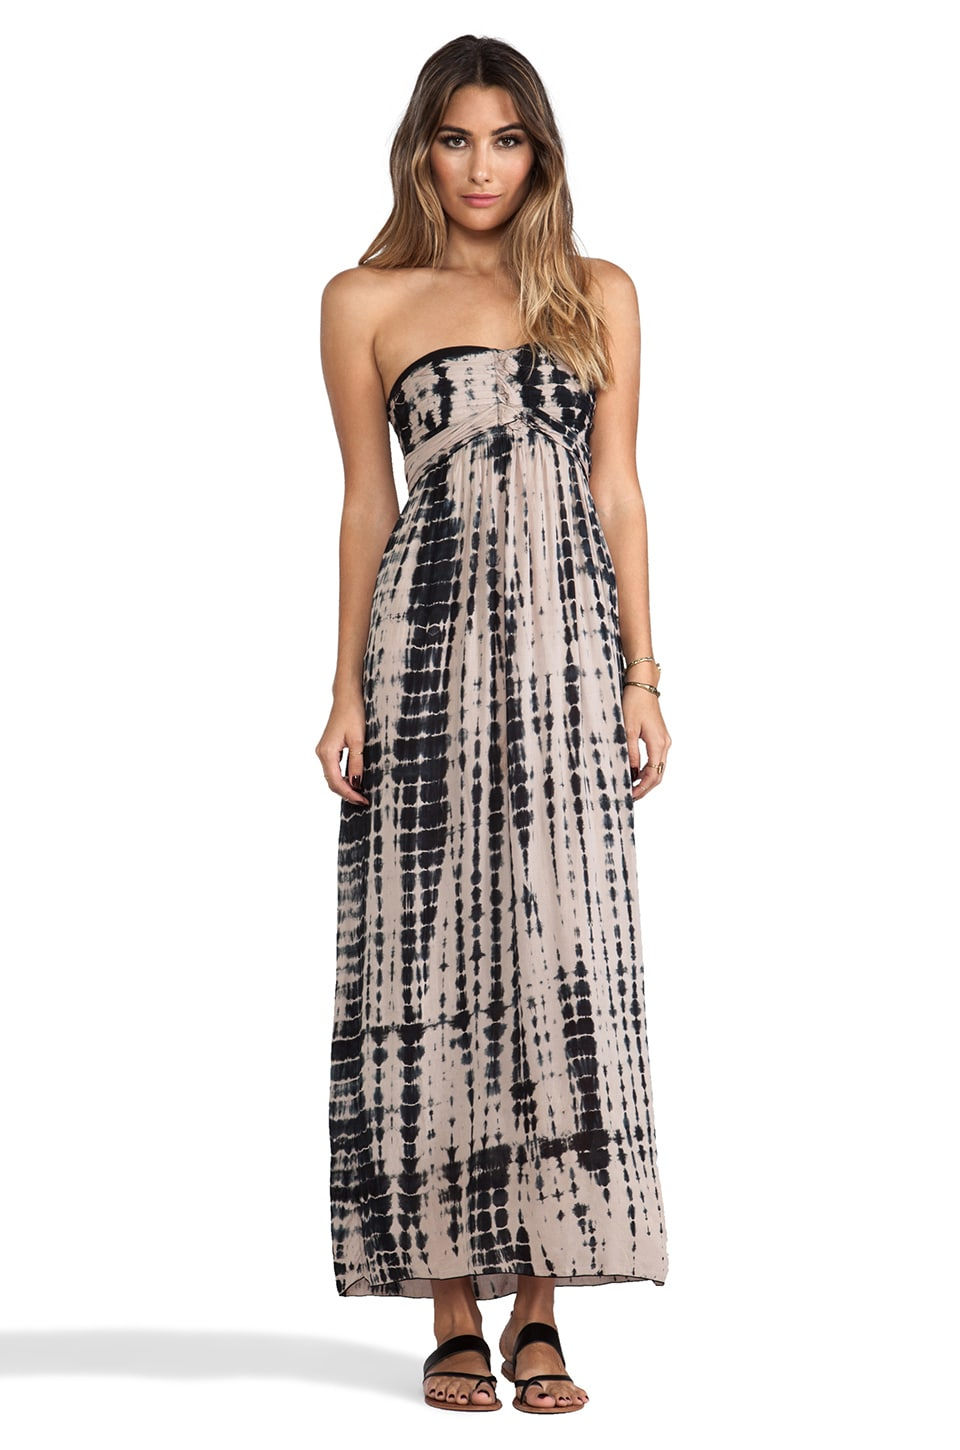 Tiare Hawaii Jasmine Printed Strapless Maxi Dress in Stone Black